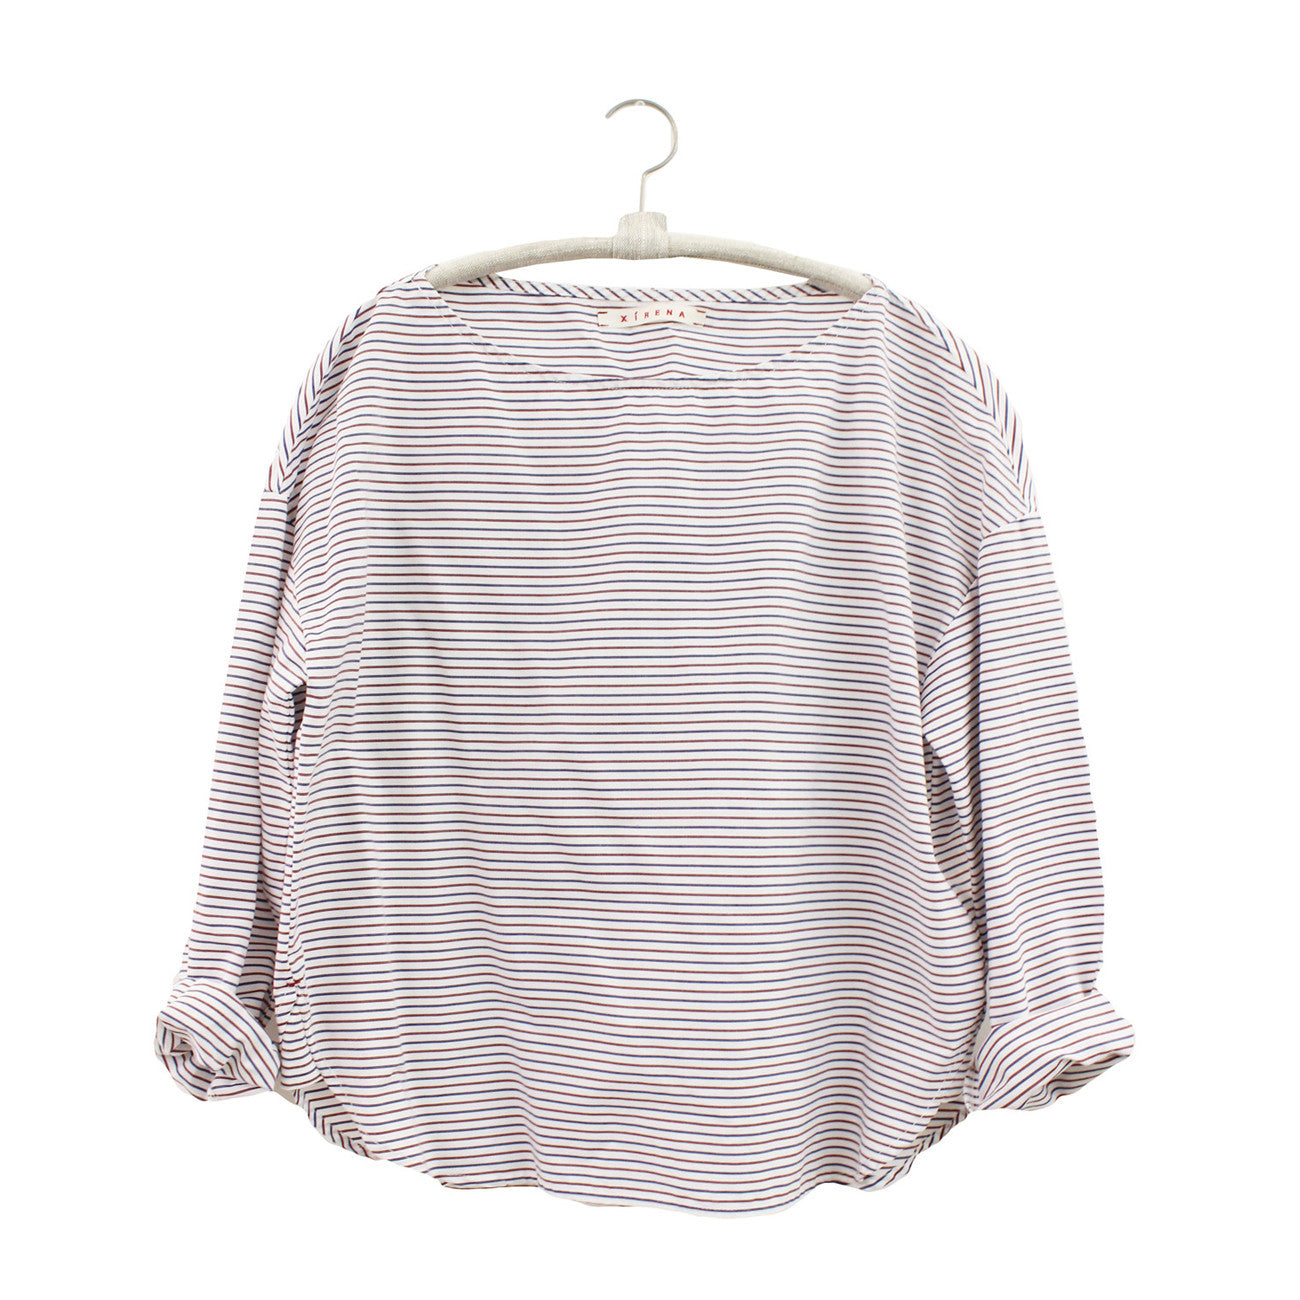 Xirena Yale Club Striped Cotton Winston Top in Liberty